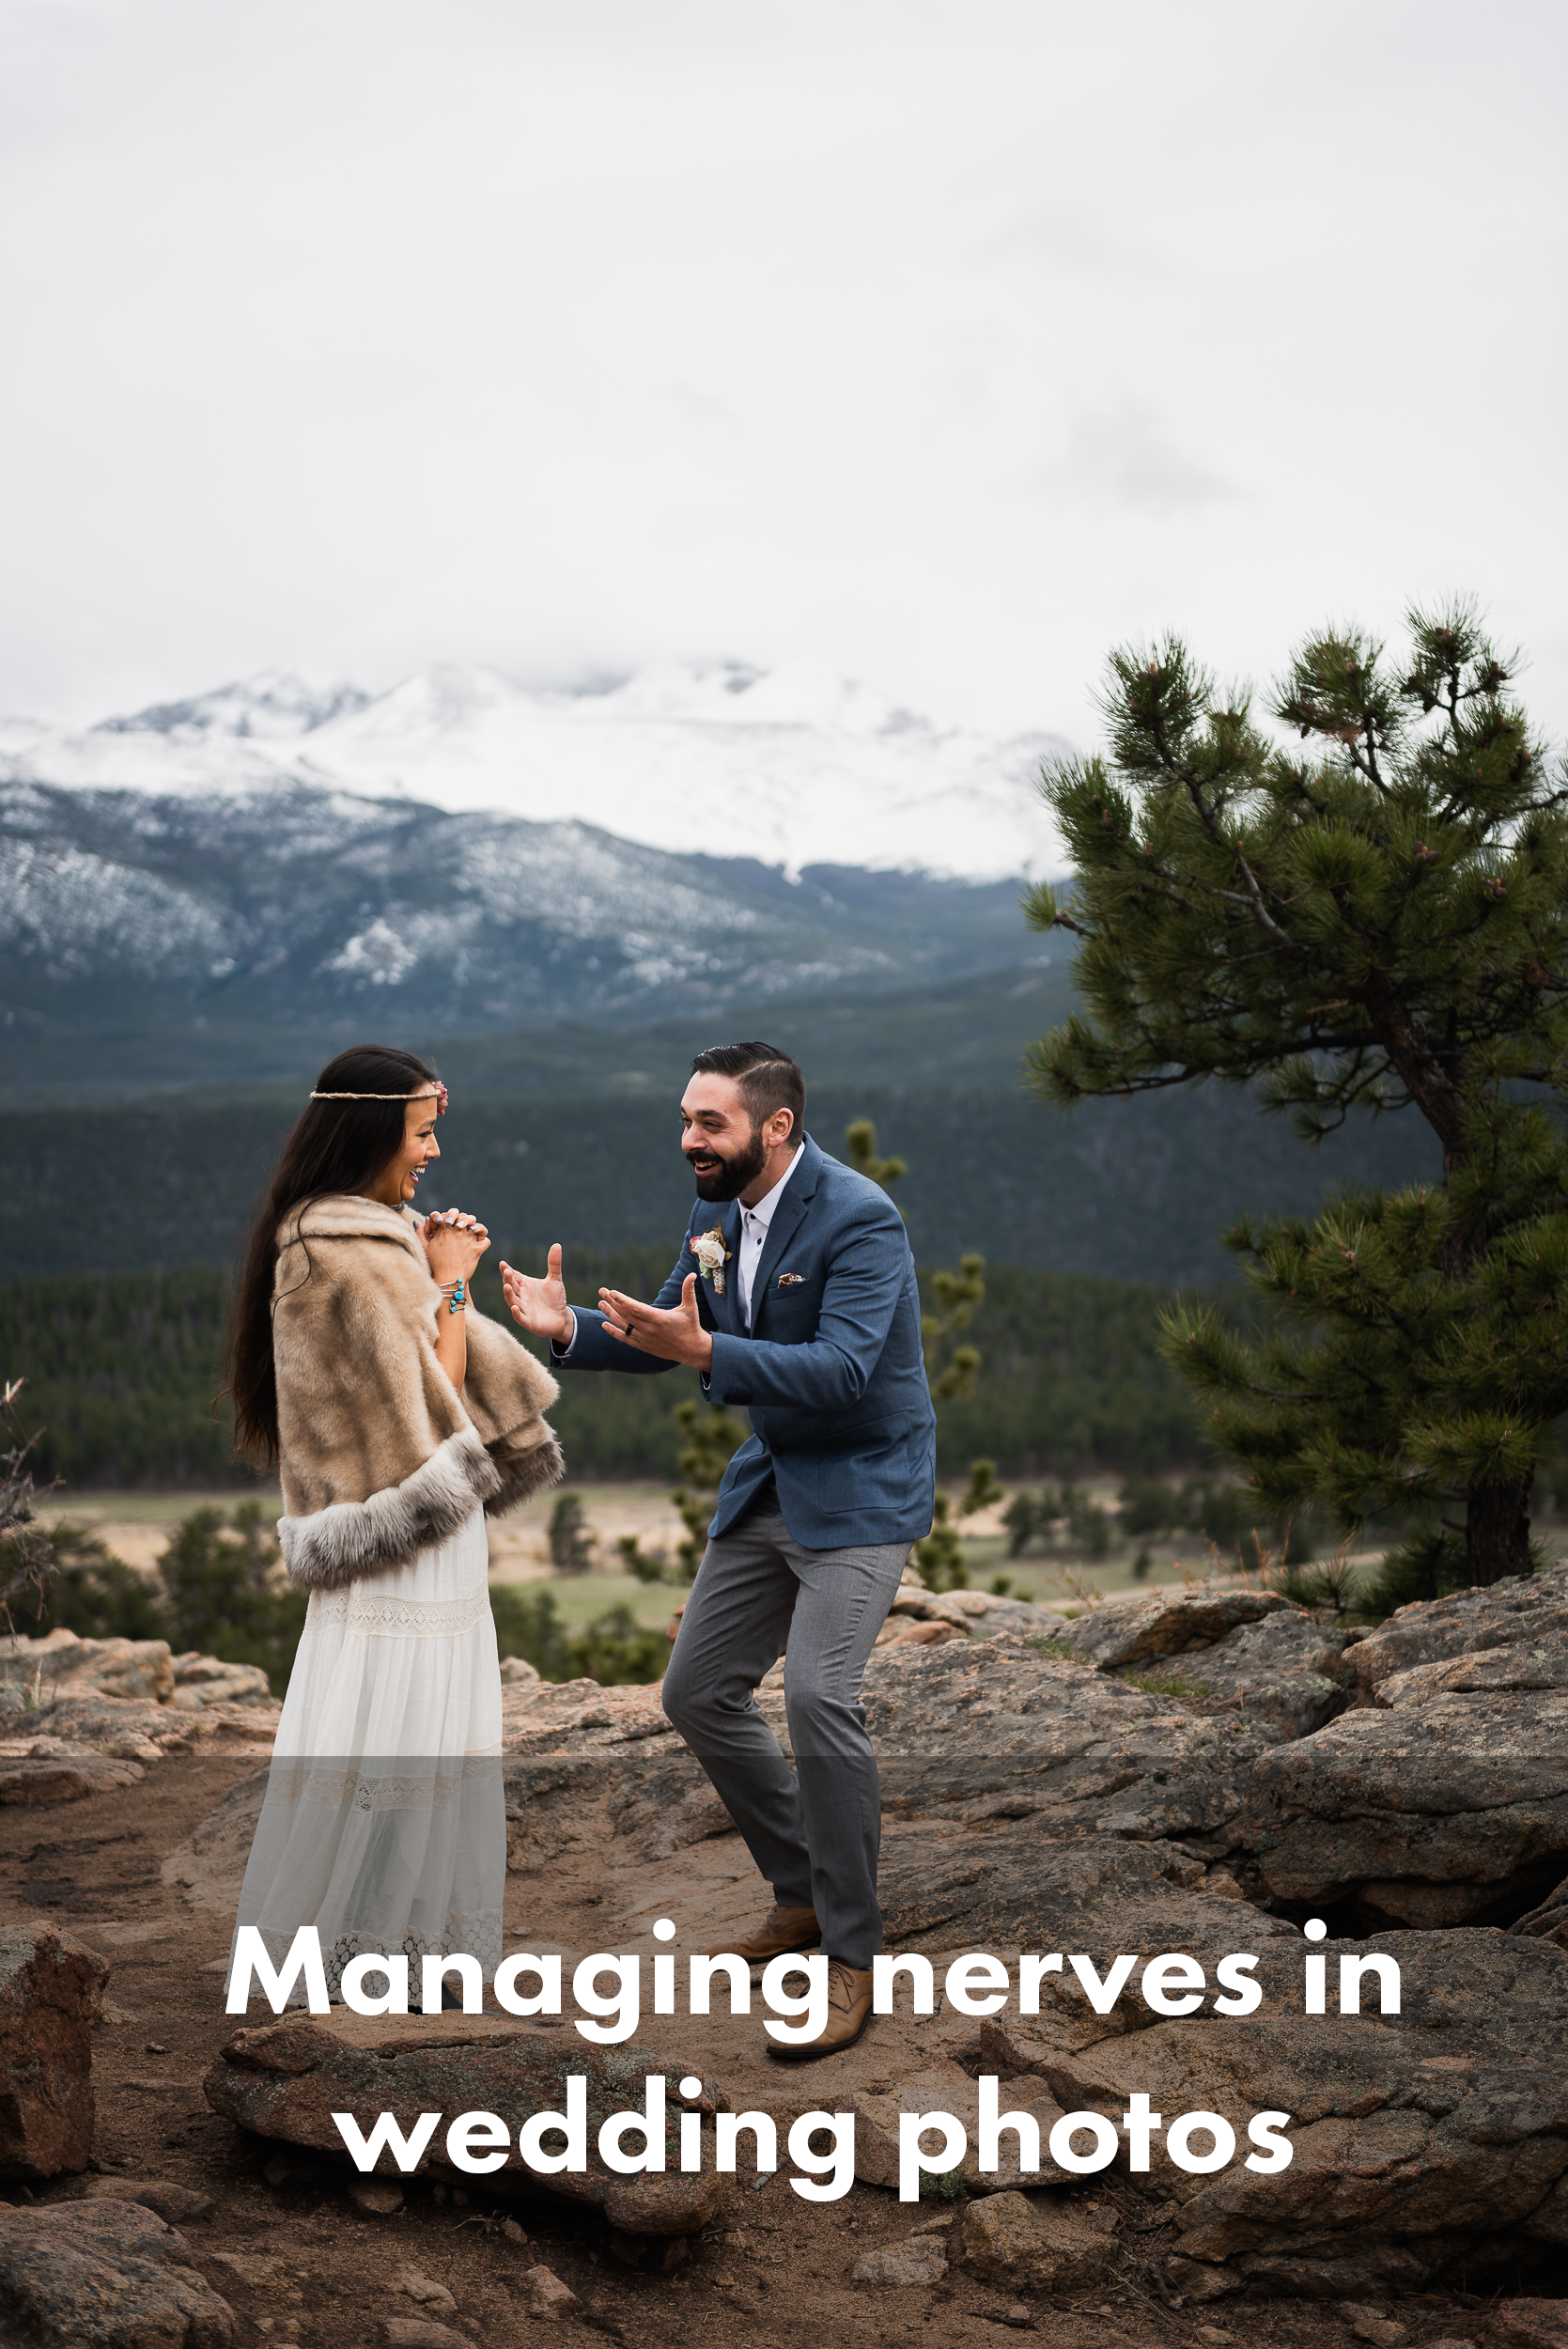 """Here's an elopement couple in colorado that just finished their ceremony, ecstatic. The groom at right is gesturing with his hands, saying """"We're MARRIED!"""" and the bride at left is clasping her hands in excitement. They're both smiling big and looking at each other. They're standing on rocks, with snowy peaks behind them."""